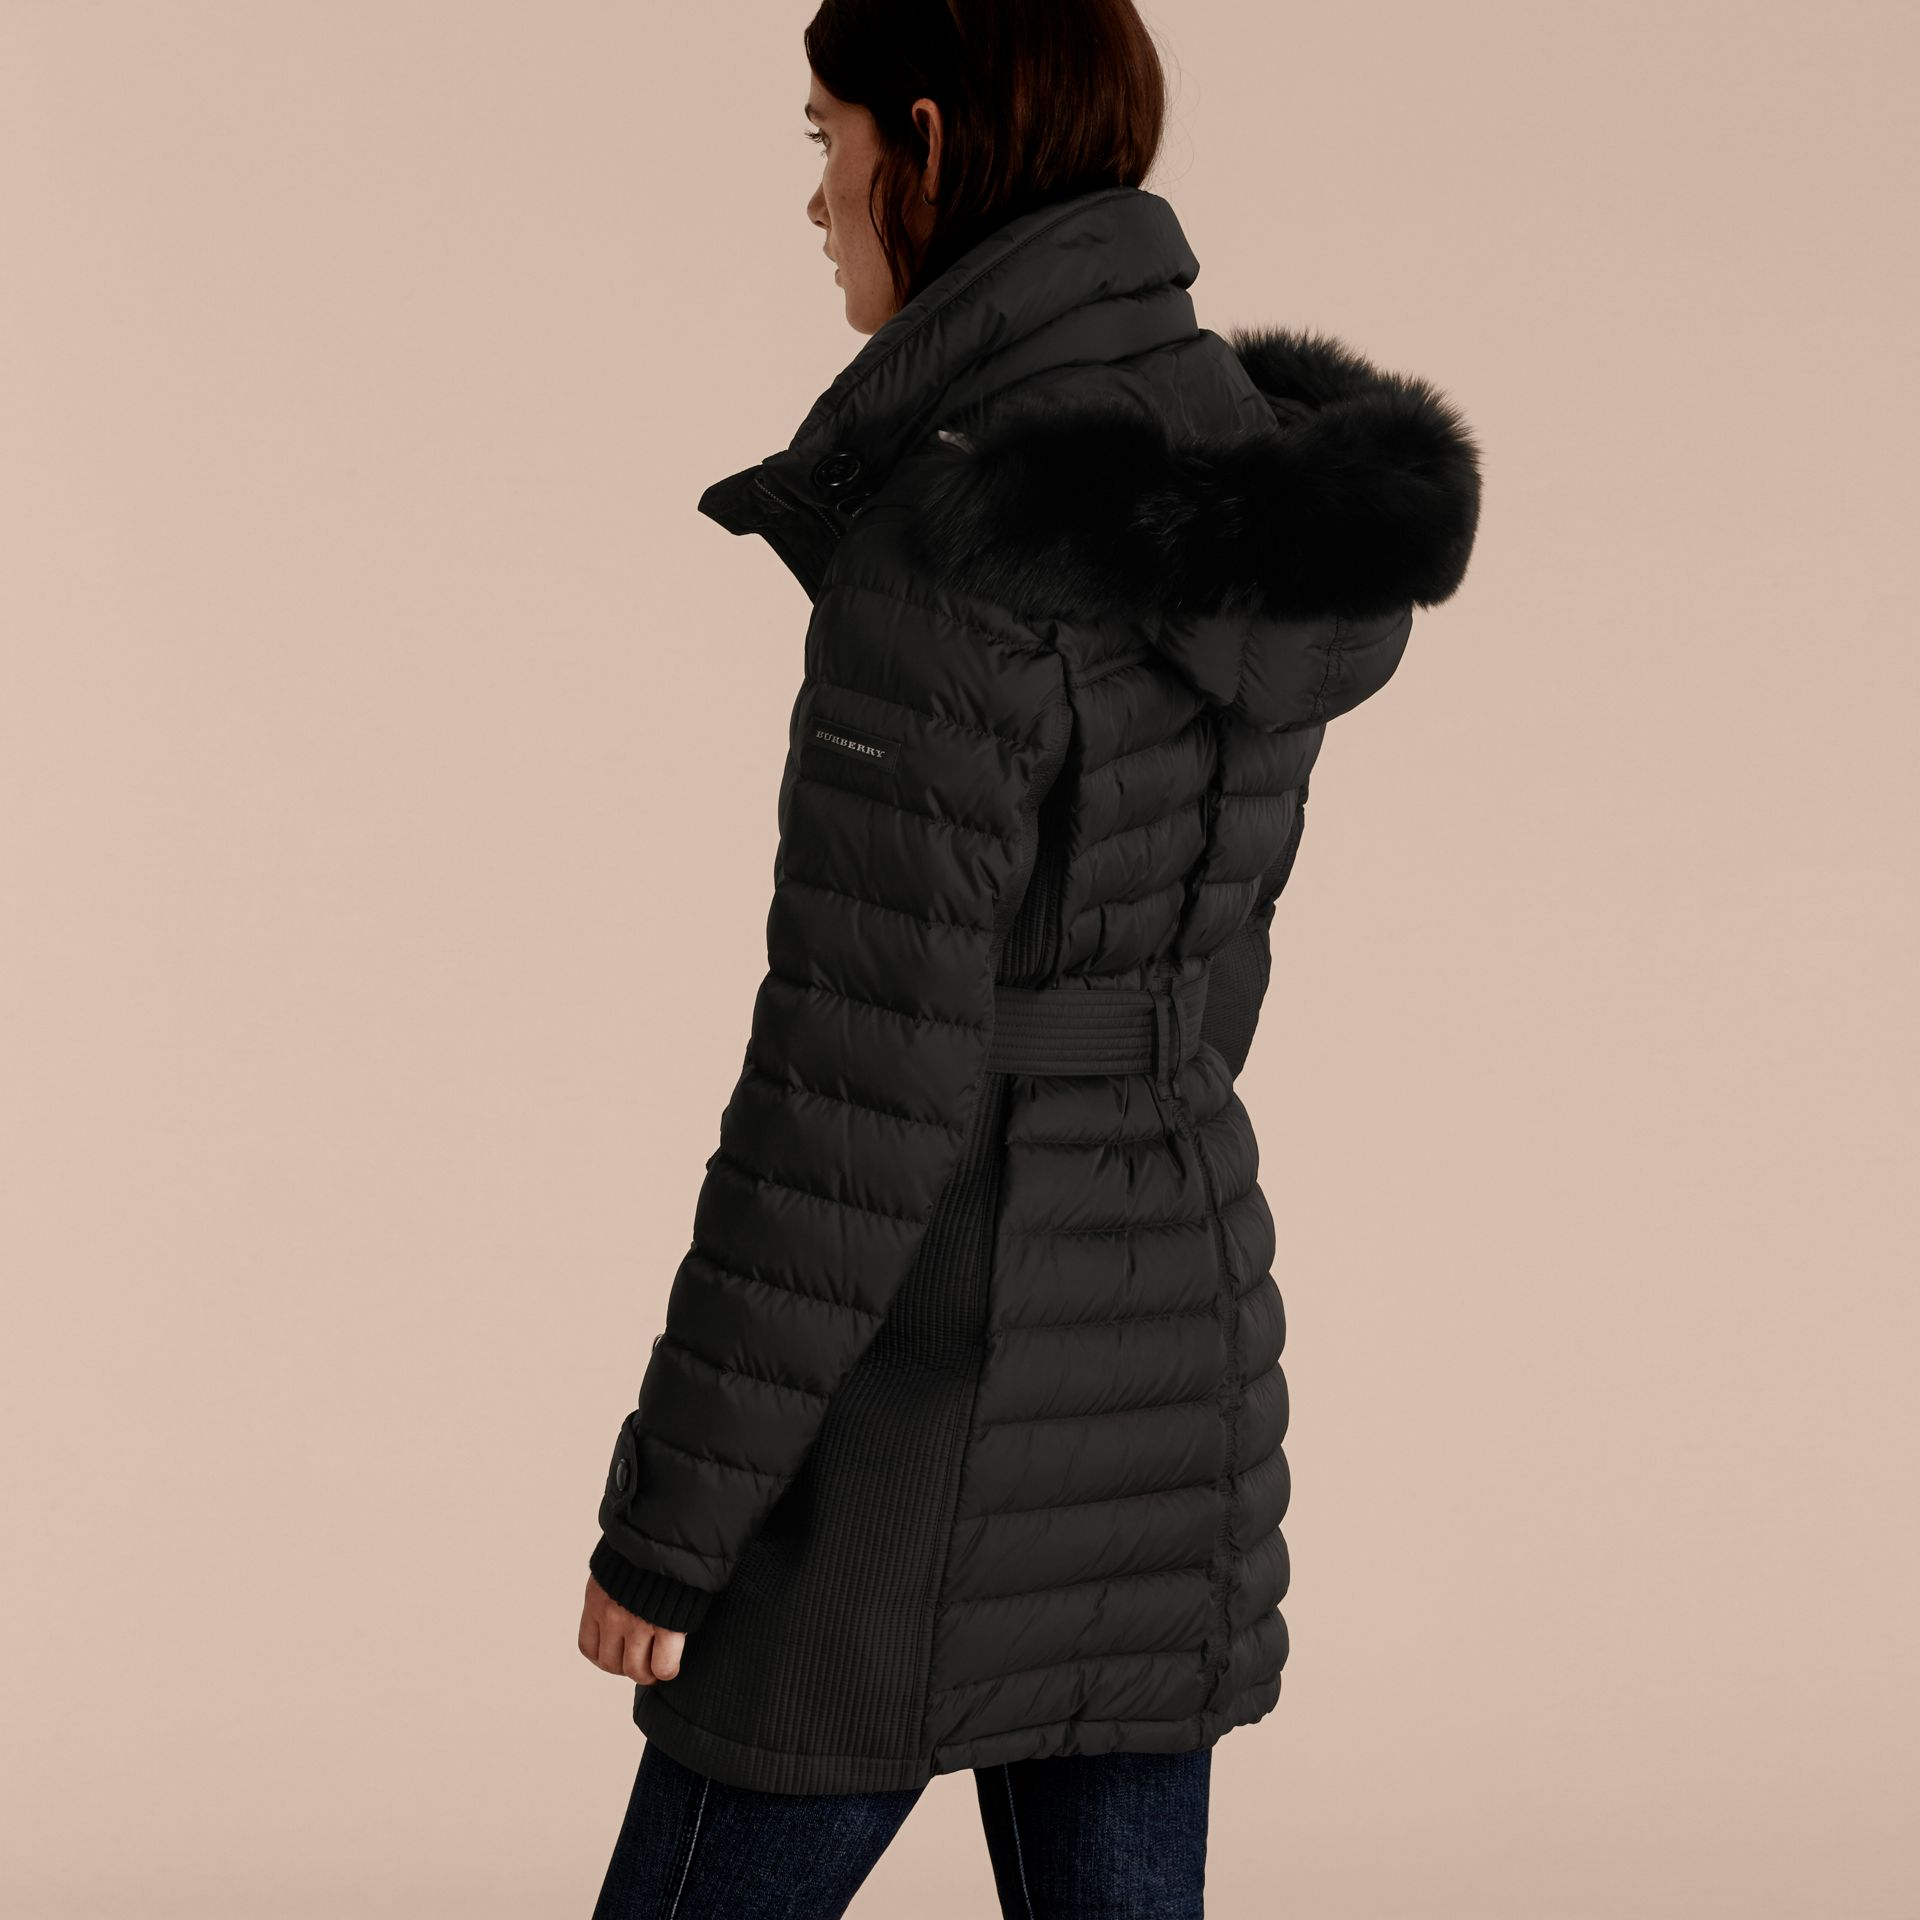 Black Down-filled Parka with Fur Trim Black - gallery image 2